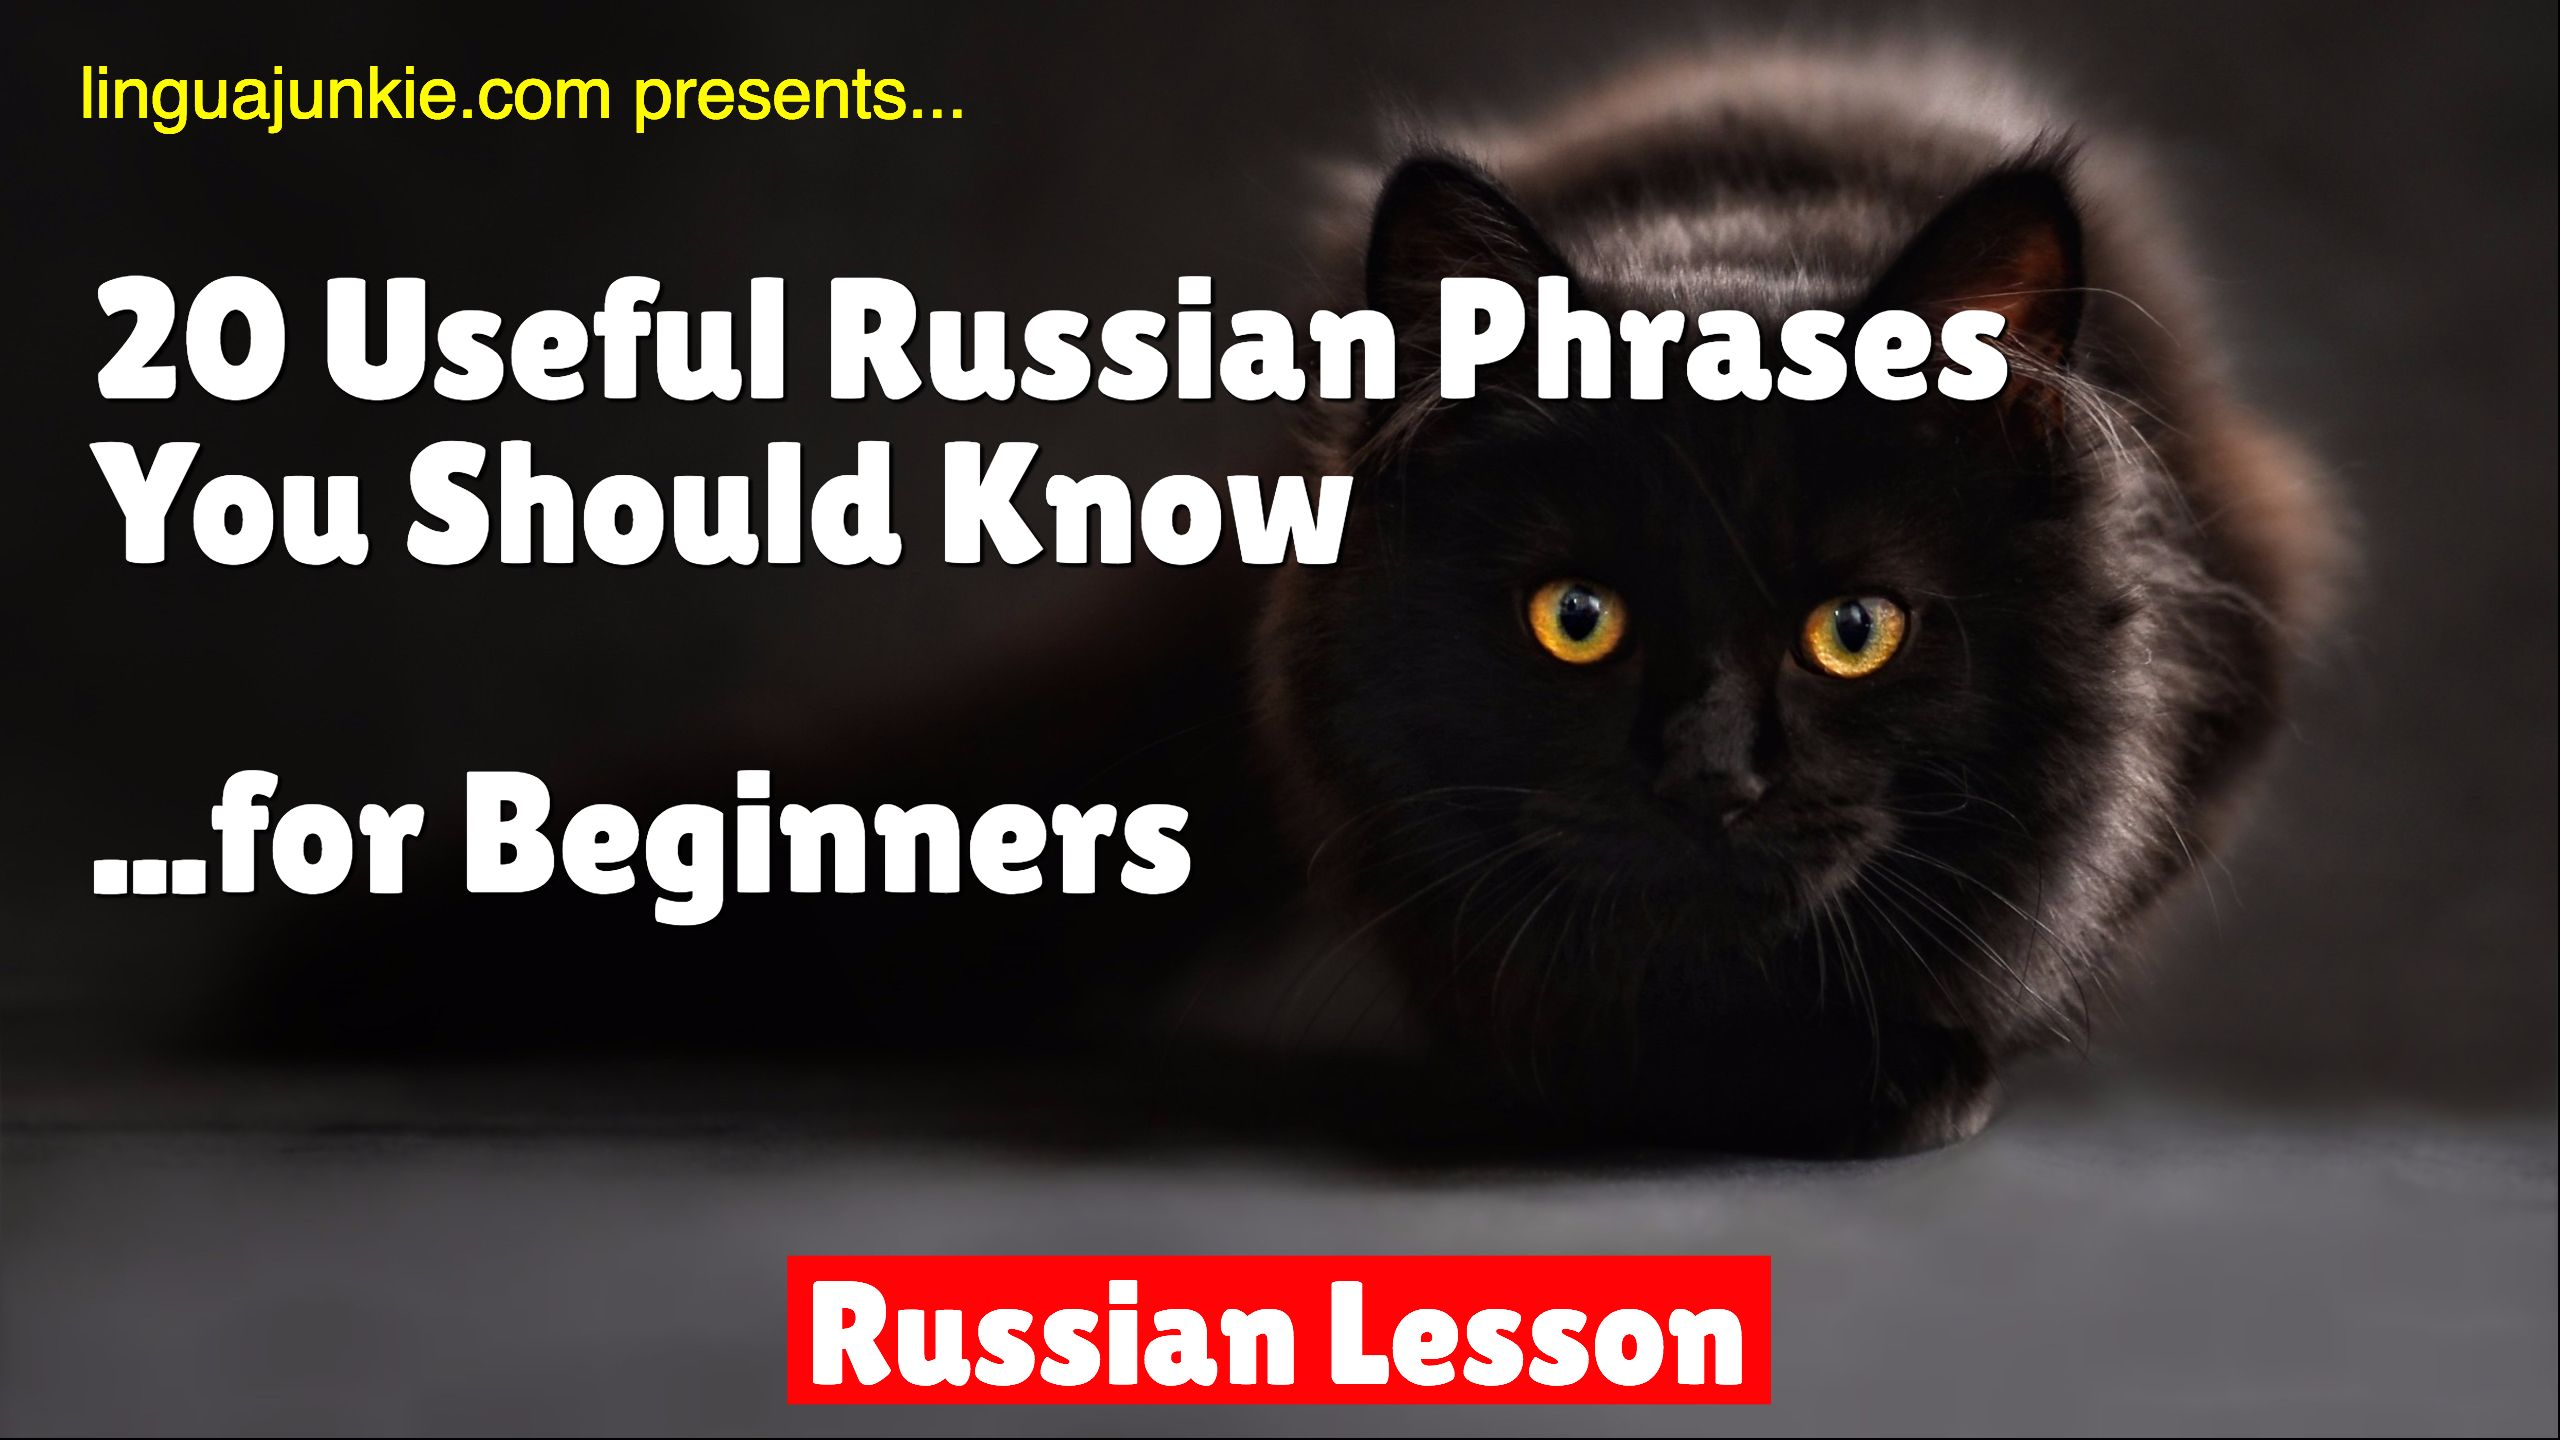 Russian Lesson Learn 20 Useful Russian Phrases For